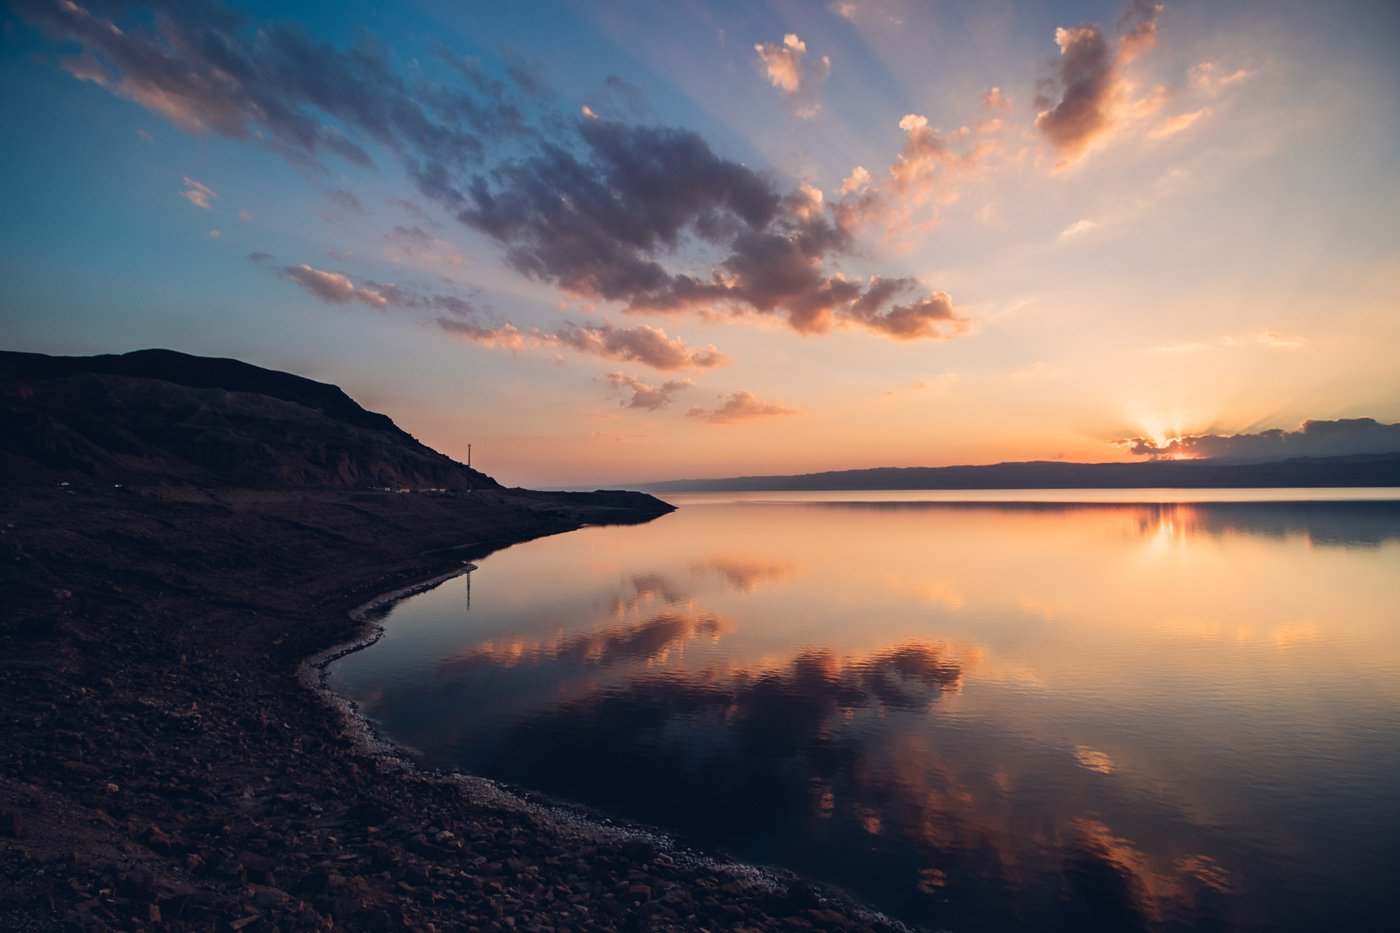 Sunset at the Dead Sea in Jordan as shot with Canon 200D